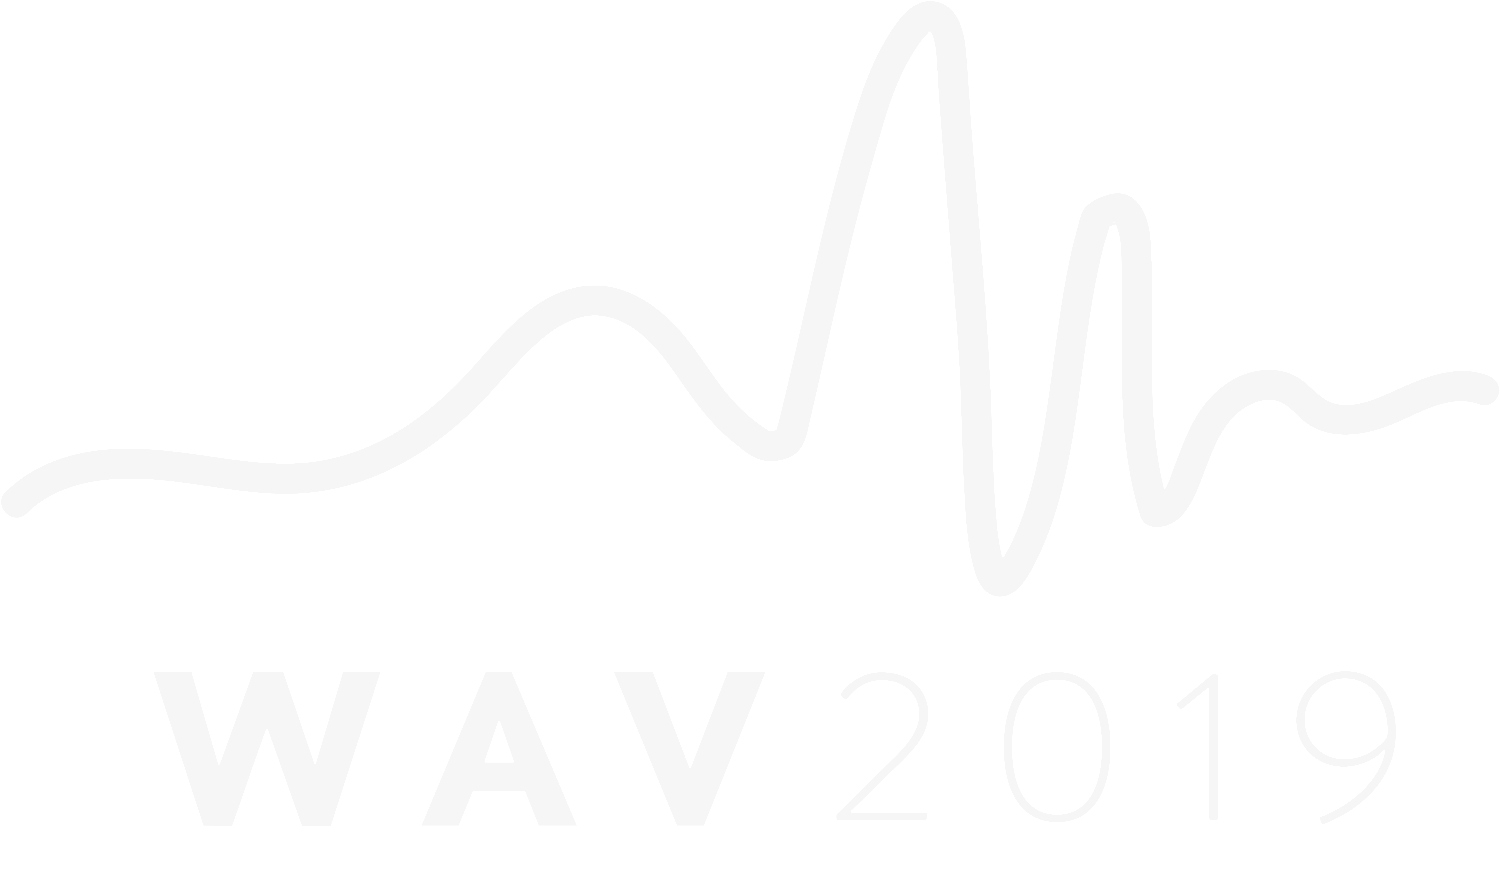 WAV2019: Student Leadership Conference